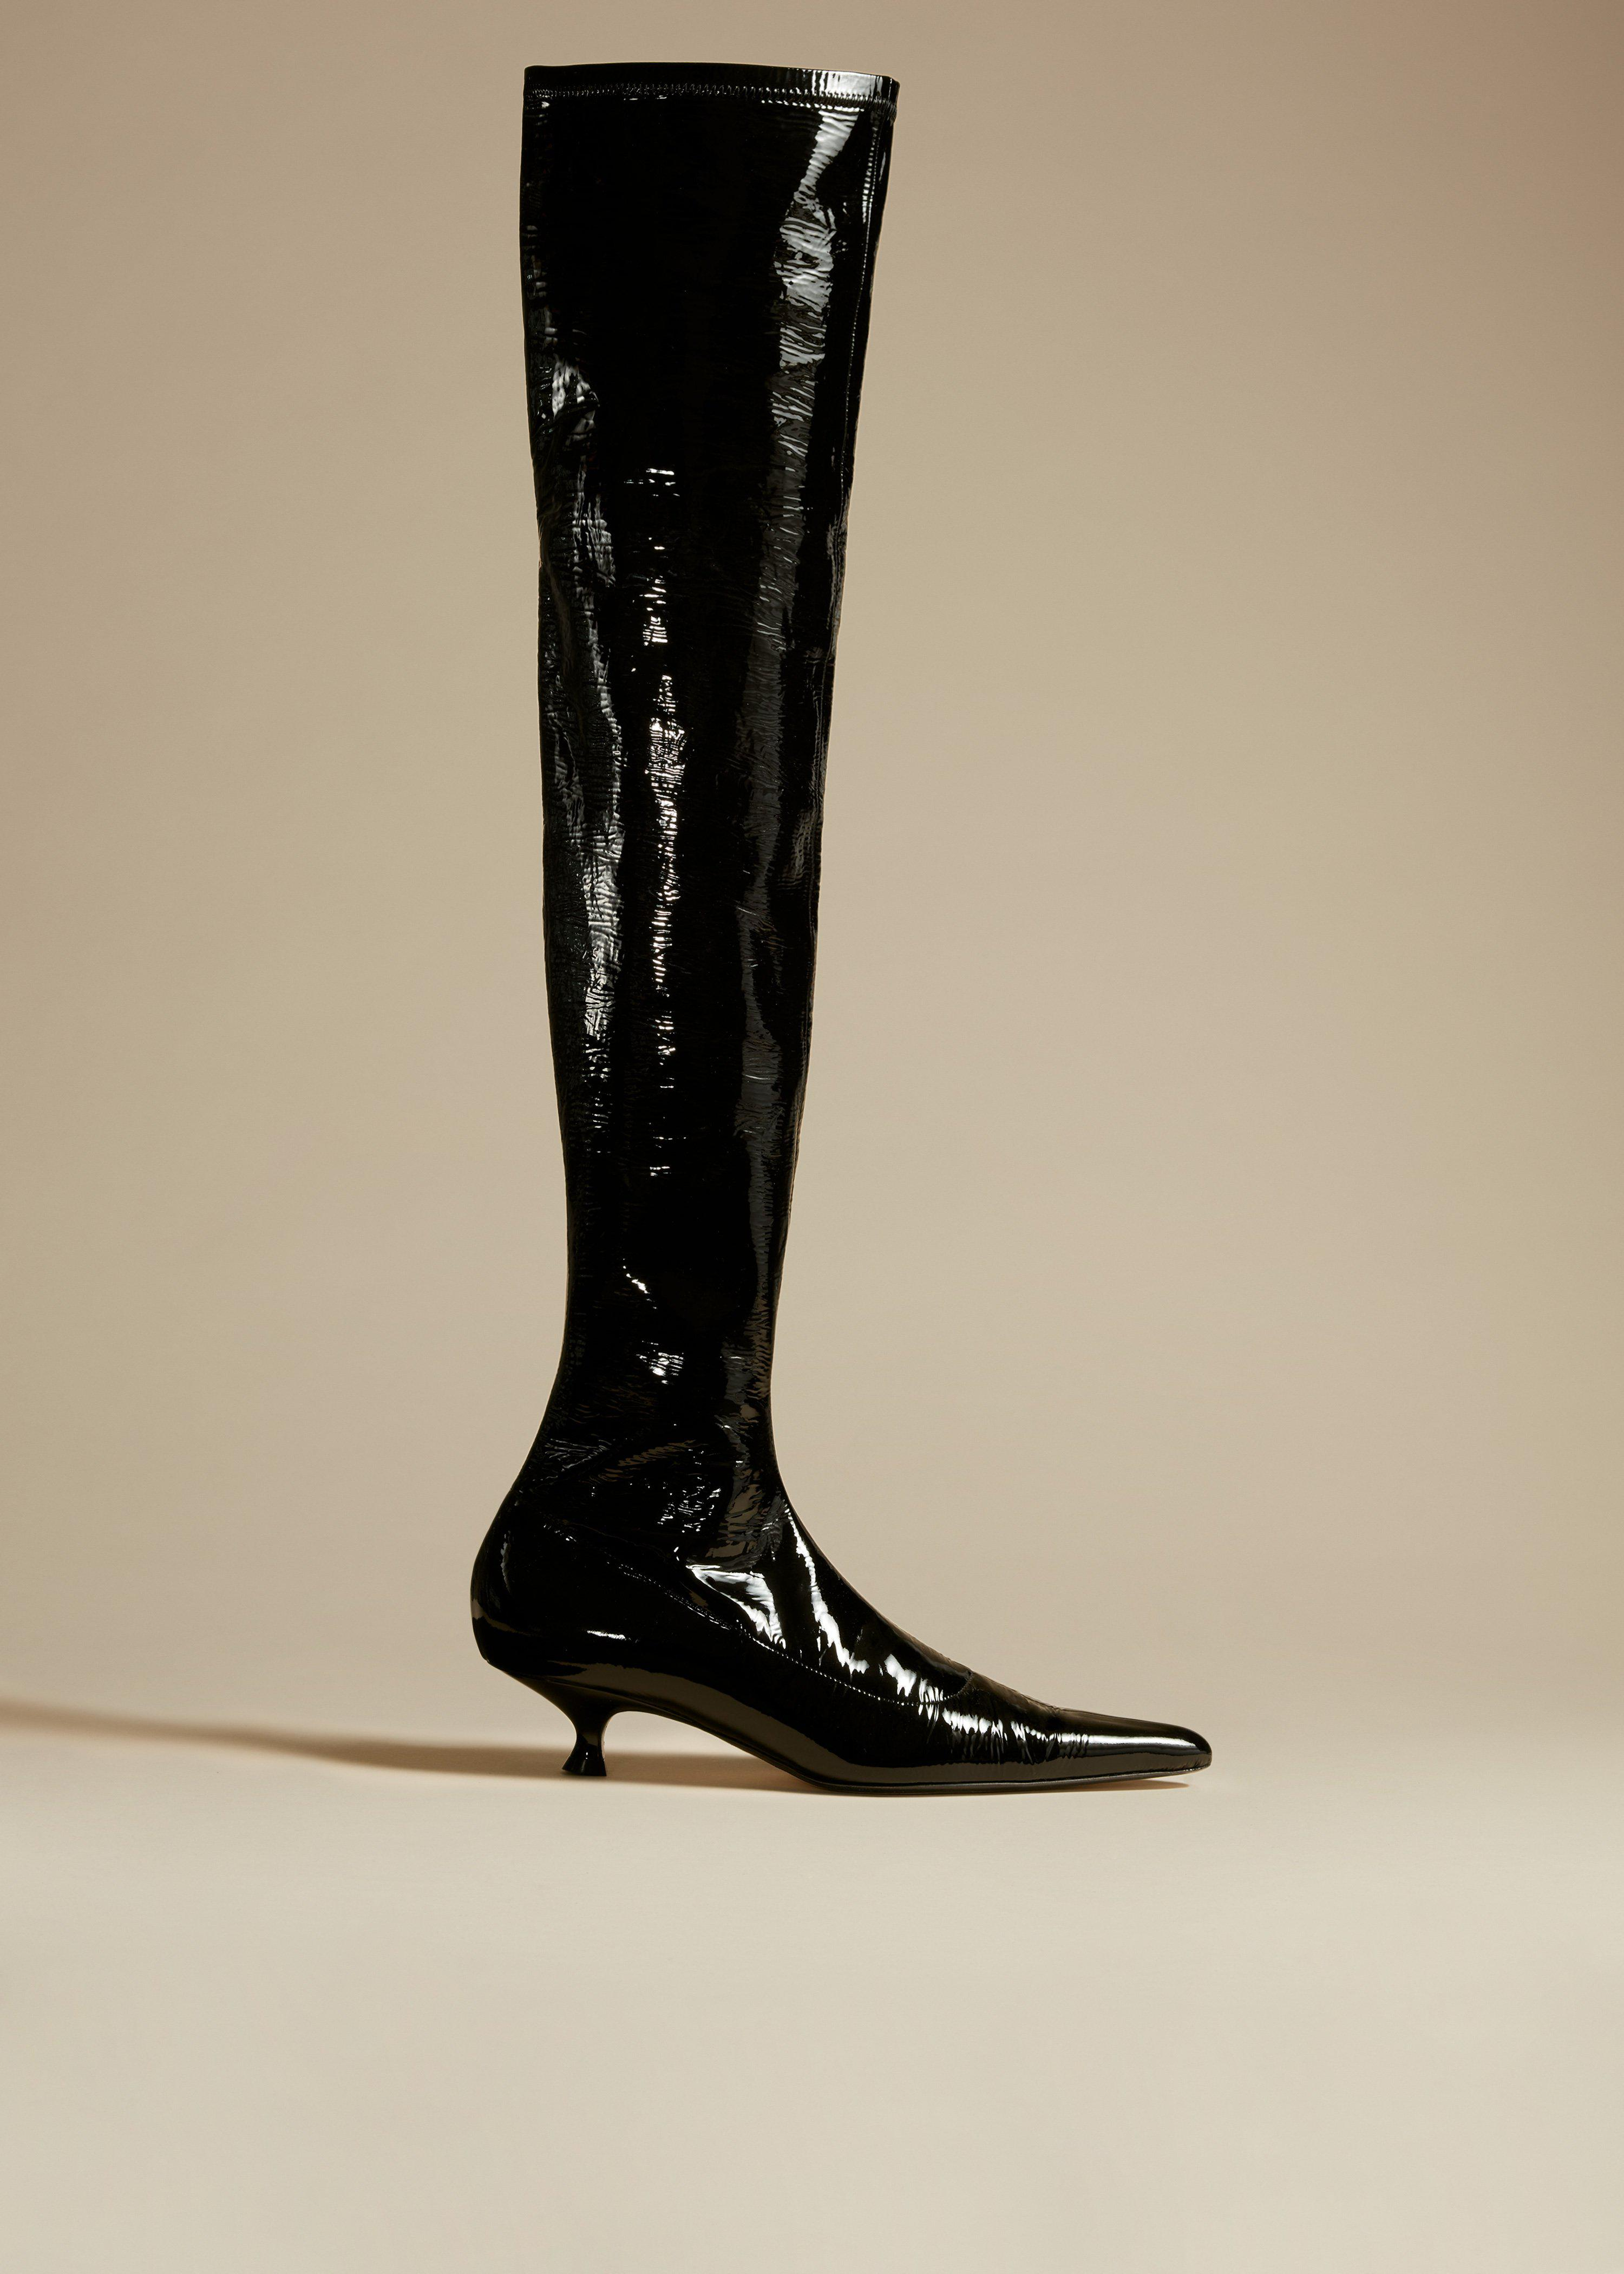 The Volos Over-the-Knee Boot in Black Patent Leather